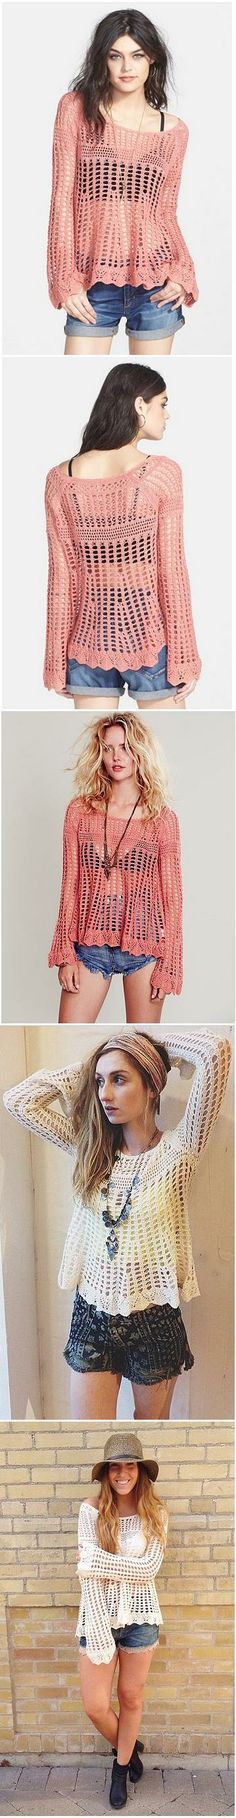 Free People. 'Annabelle' Crocheted Pullover.  #crochet <3ceruleana<3